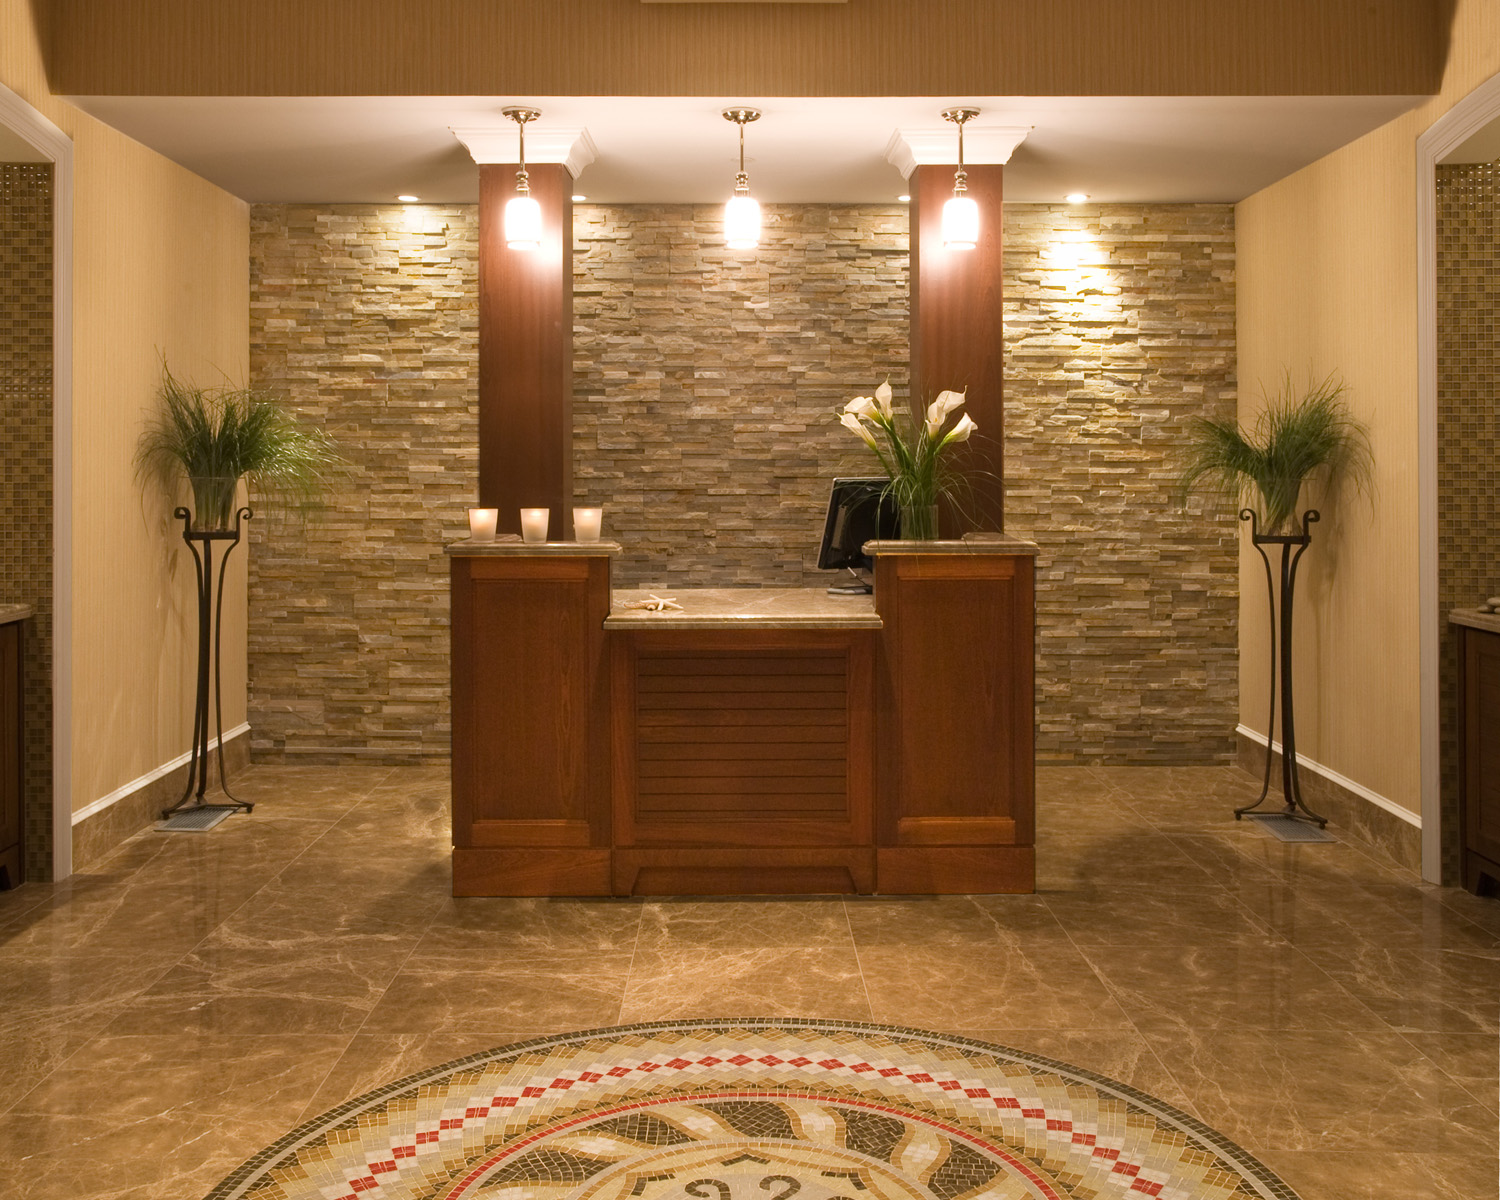 Small hotel lobby design the lusky u great small hotel for Small hotel interior design